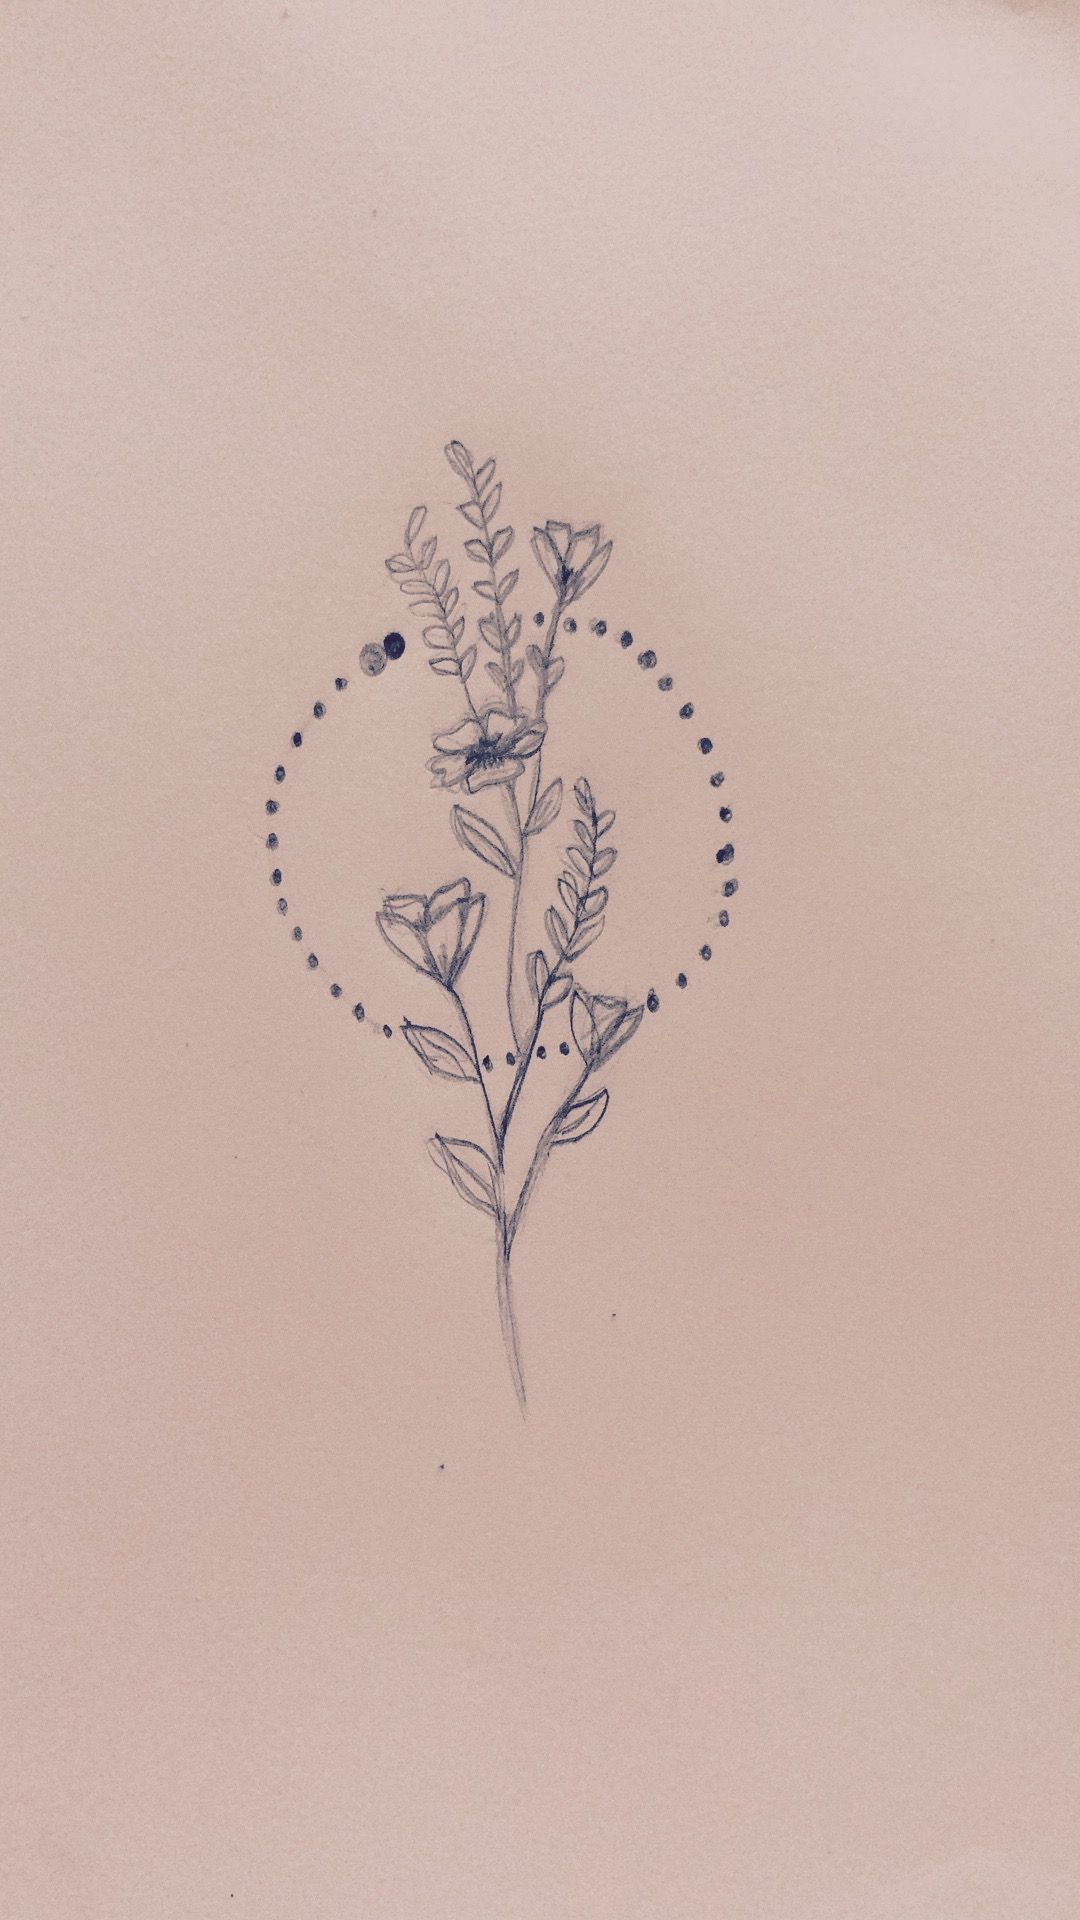 Minimalist Simple Flower Circle Tattoo: Thinking About Getting This One As My First Tattoo #tattoo